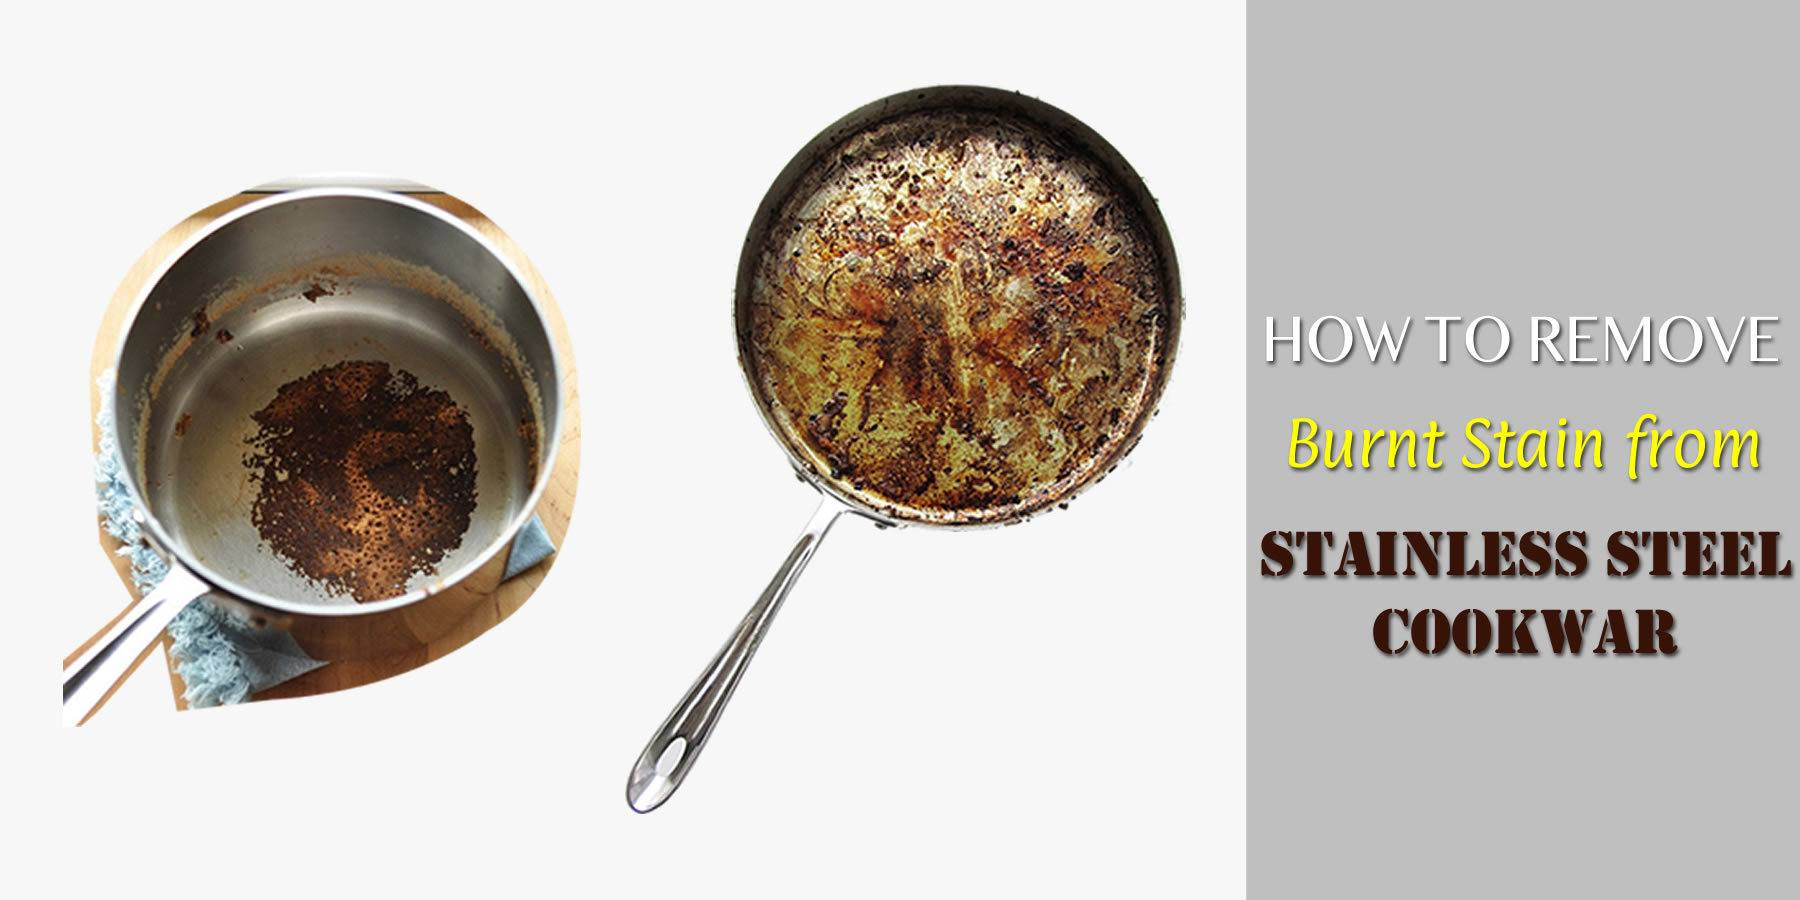 How To Remove Burnt Stain From Stainless Steel Cookware